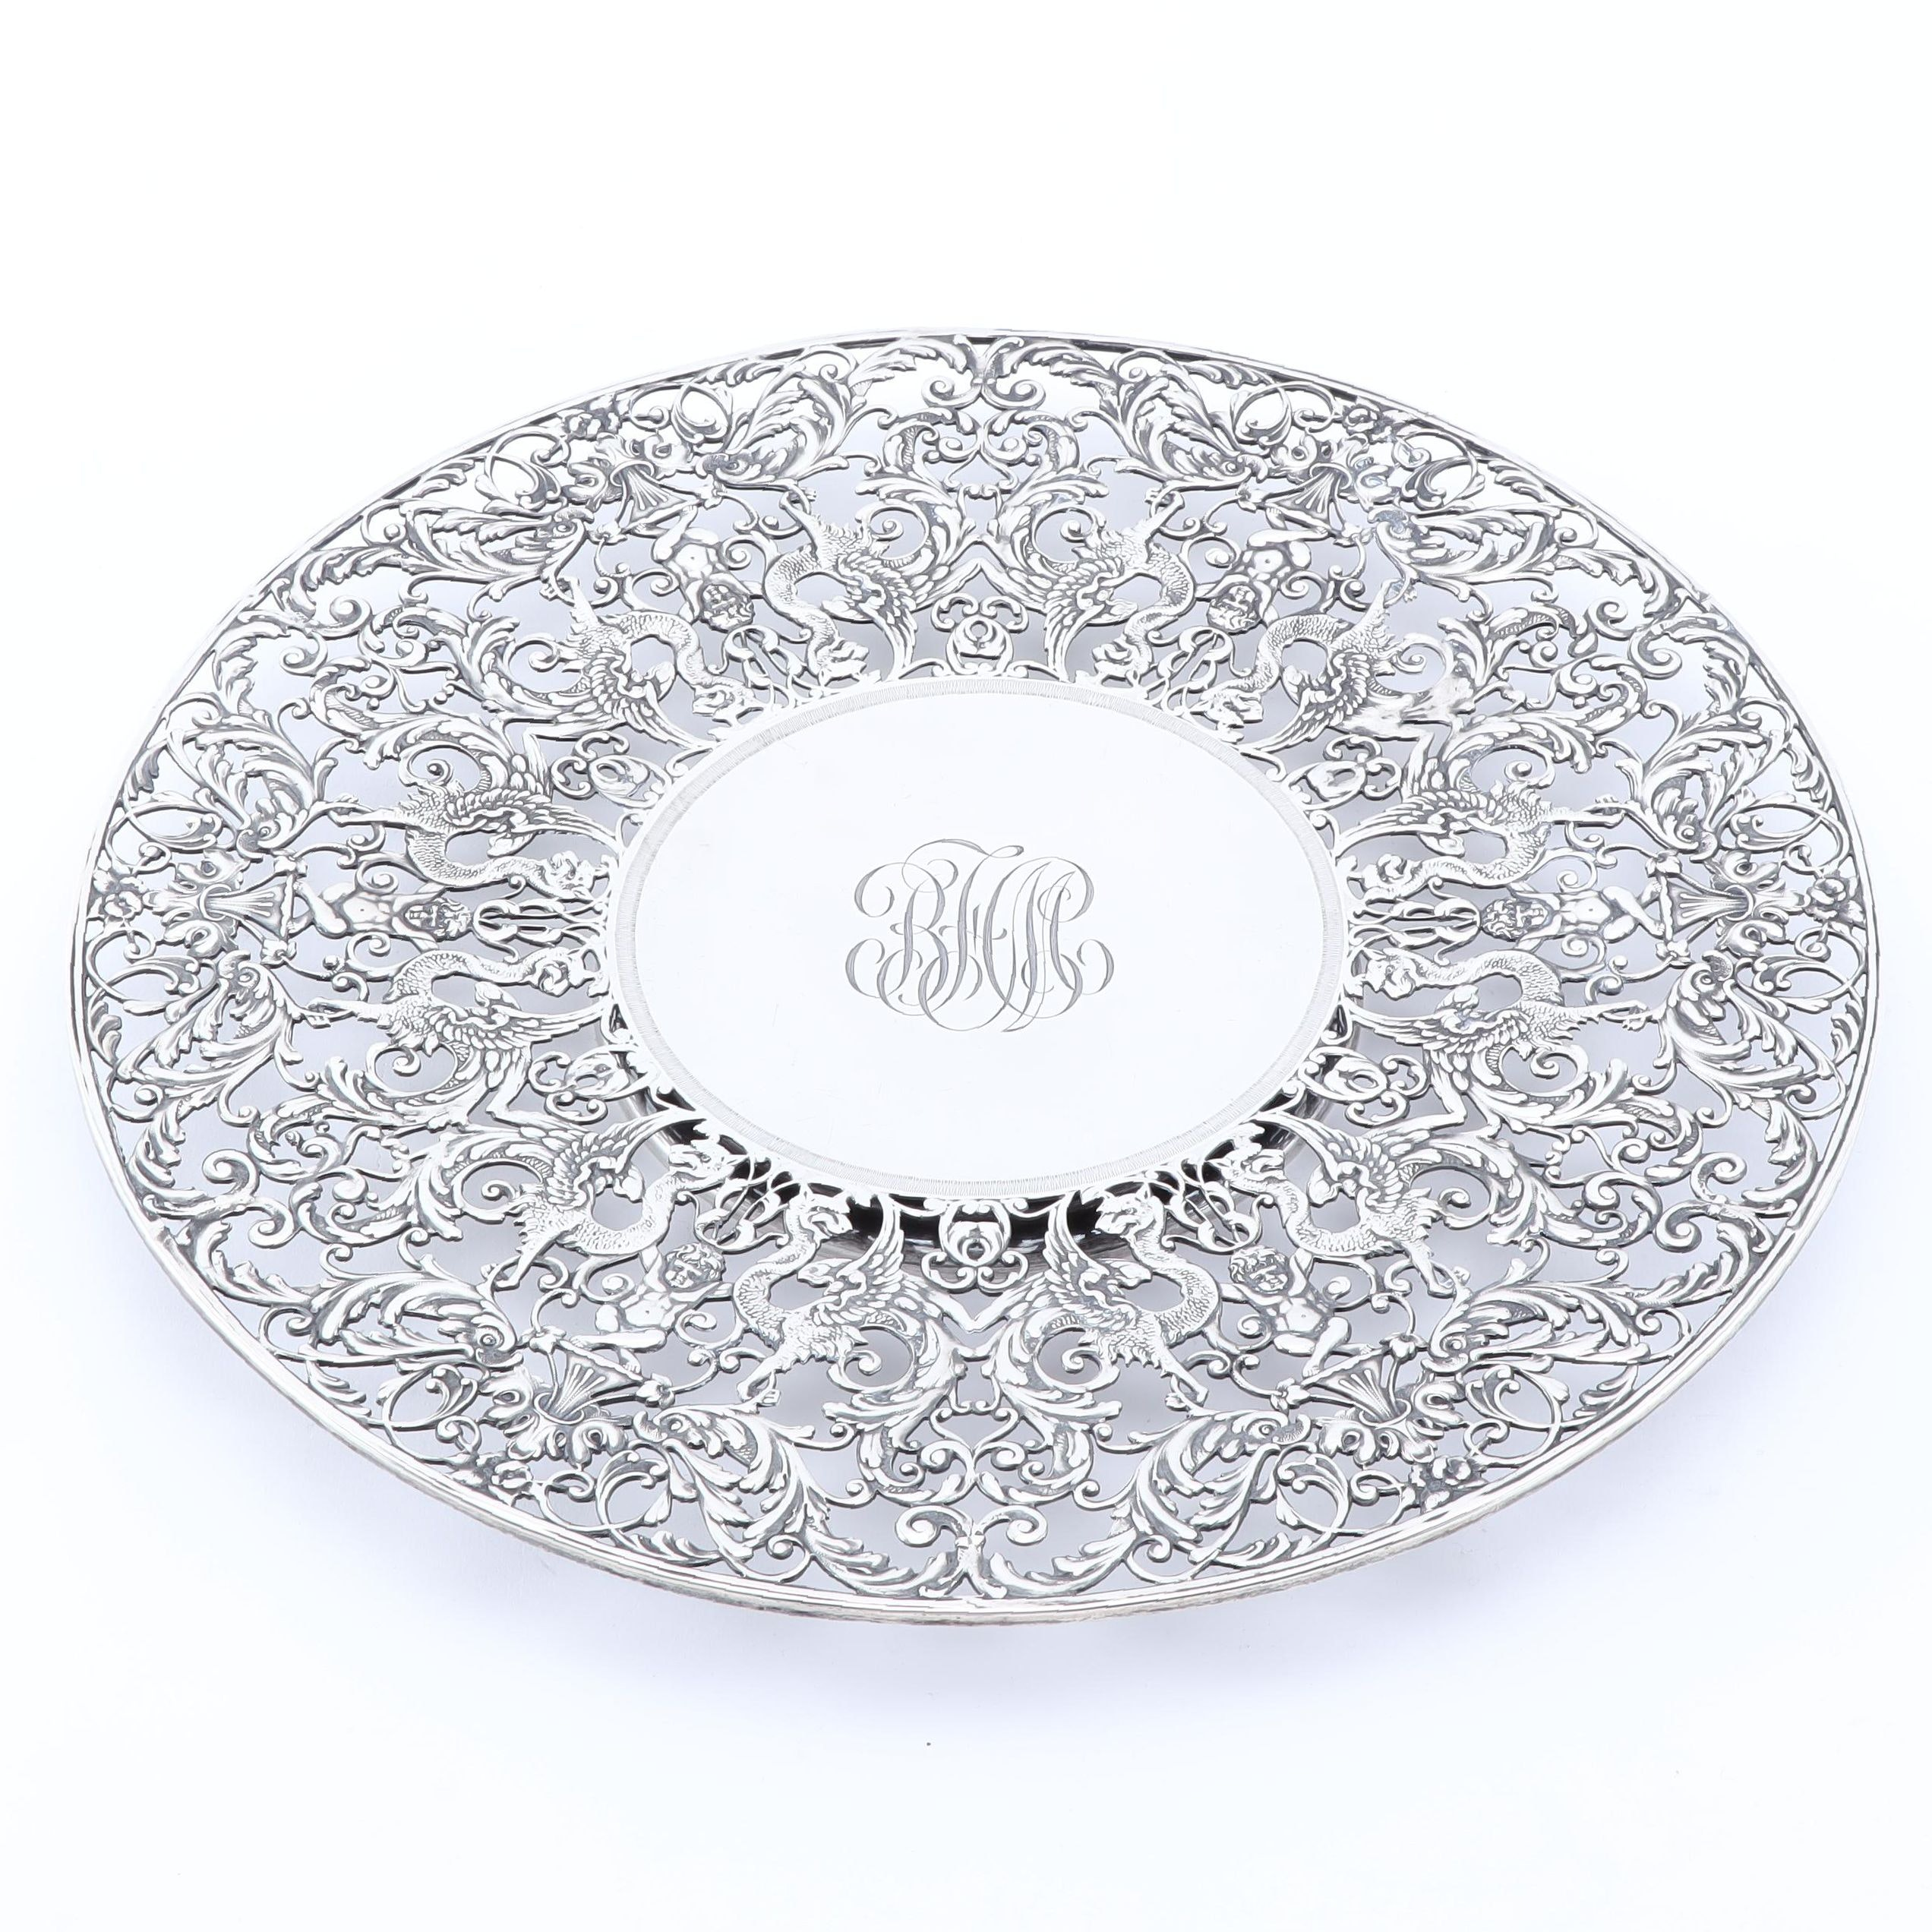 Roger Williams Rococo Sterling Silver Cake Stand